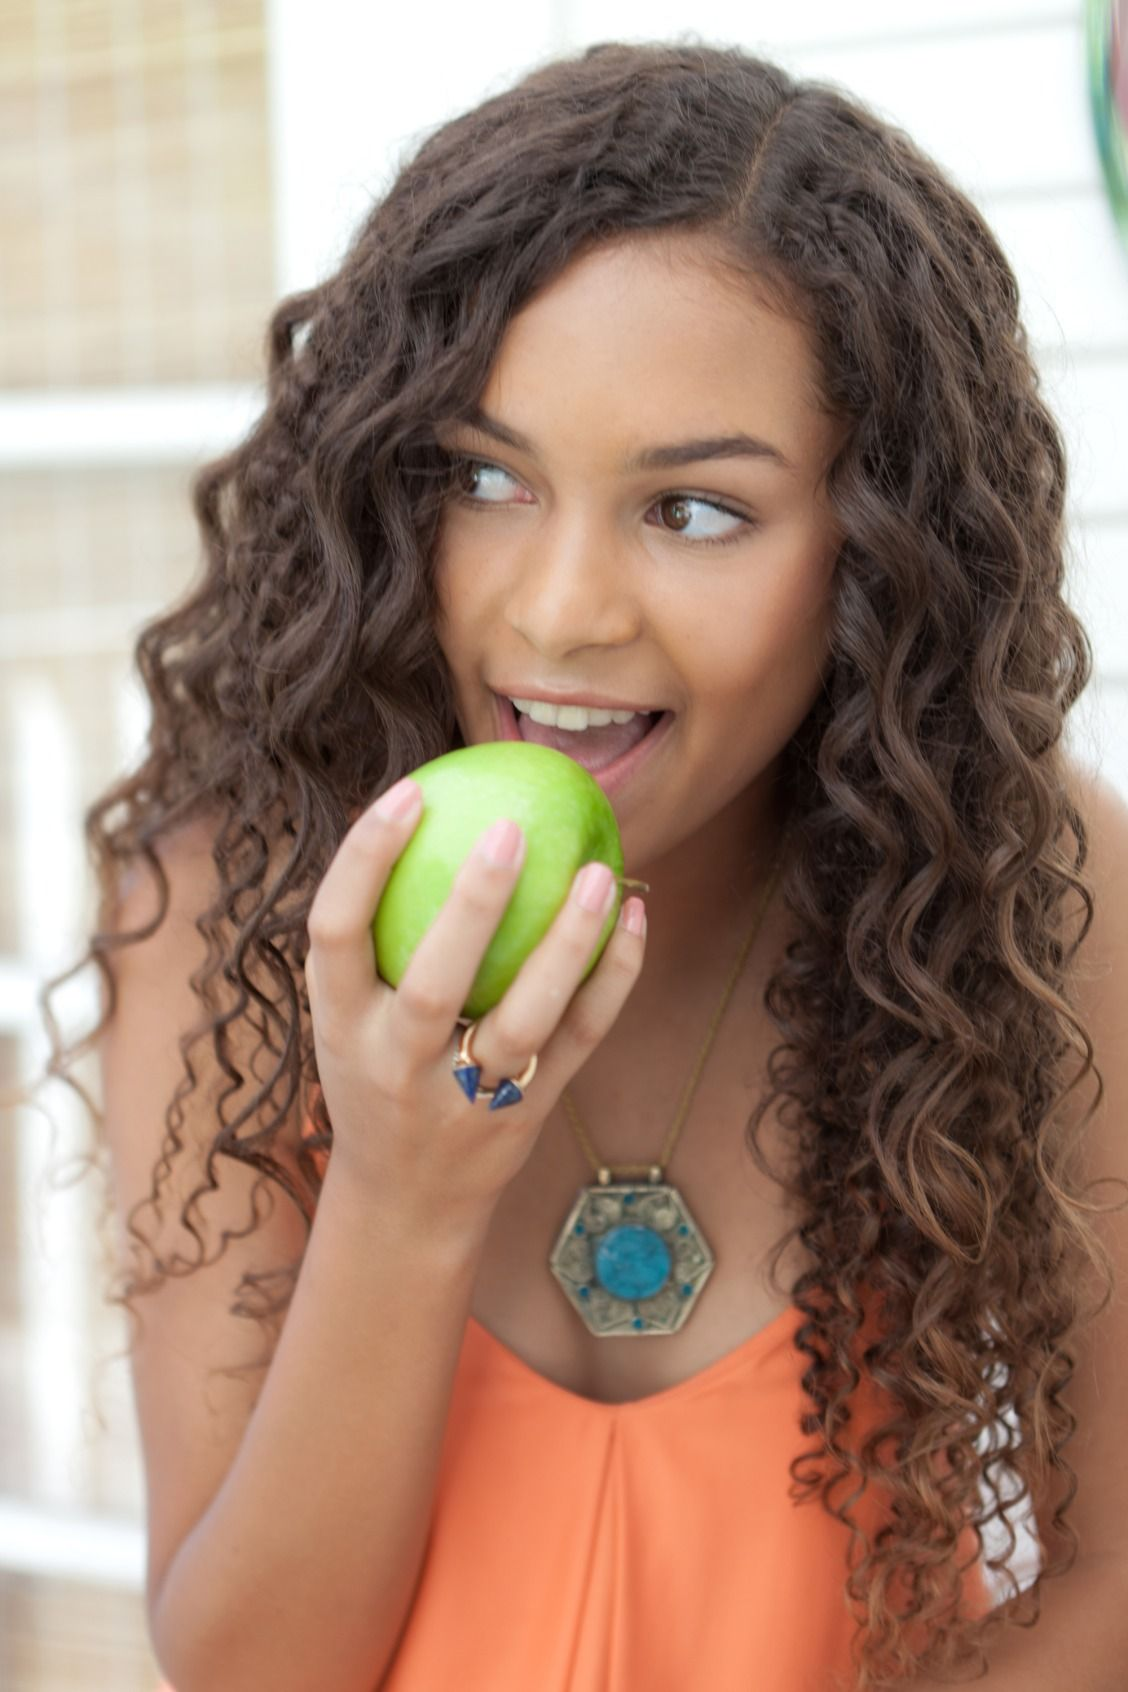 A Dietitian's Cheat Sheet For Eating Low-Carb | Weight ...